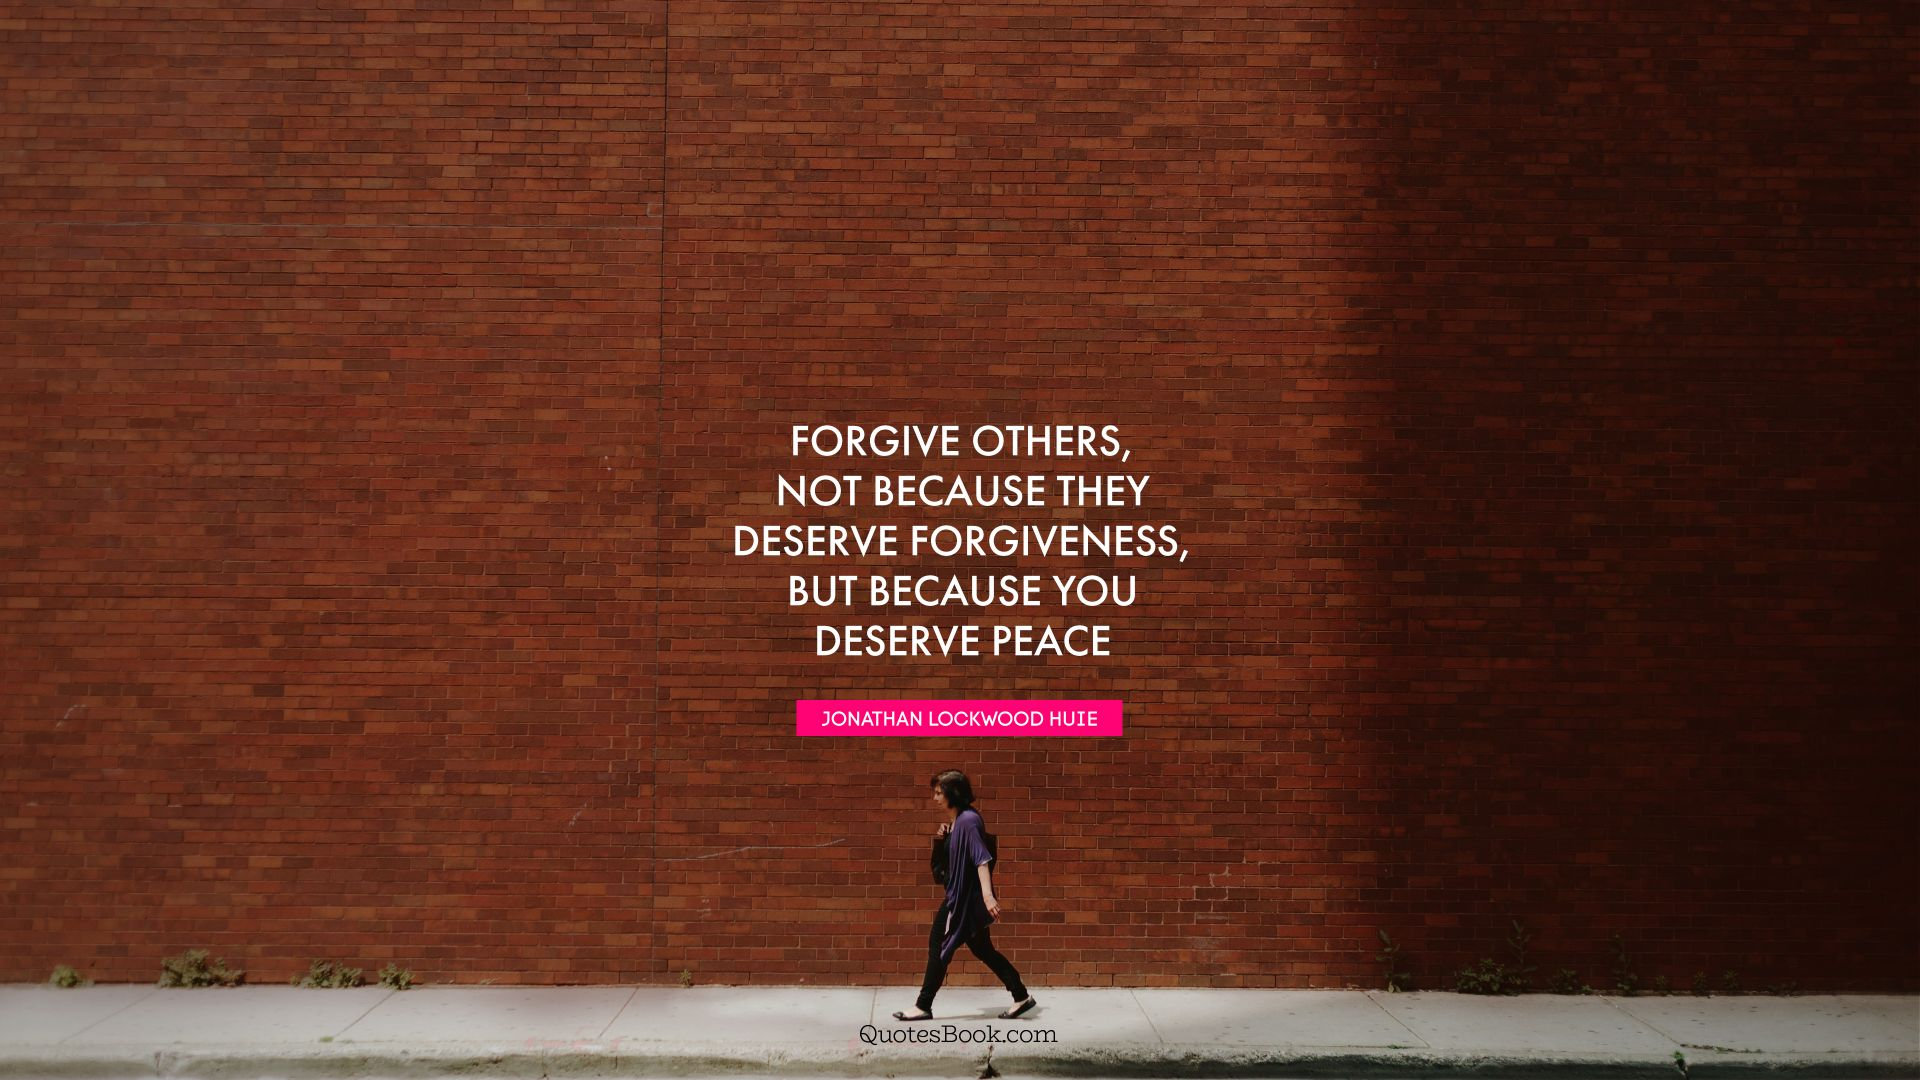 Forgive others, not because they deserve forgiveness, but because you deserve peace. - Quote by Jonathan Lockwood Huie